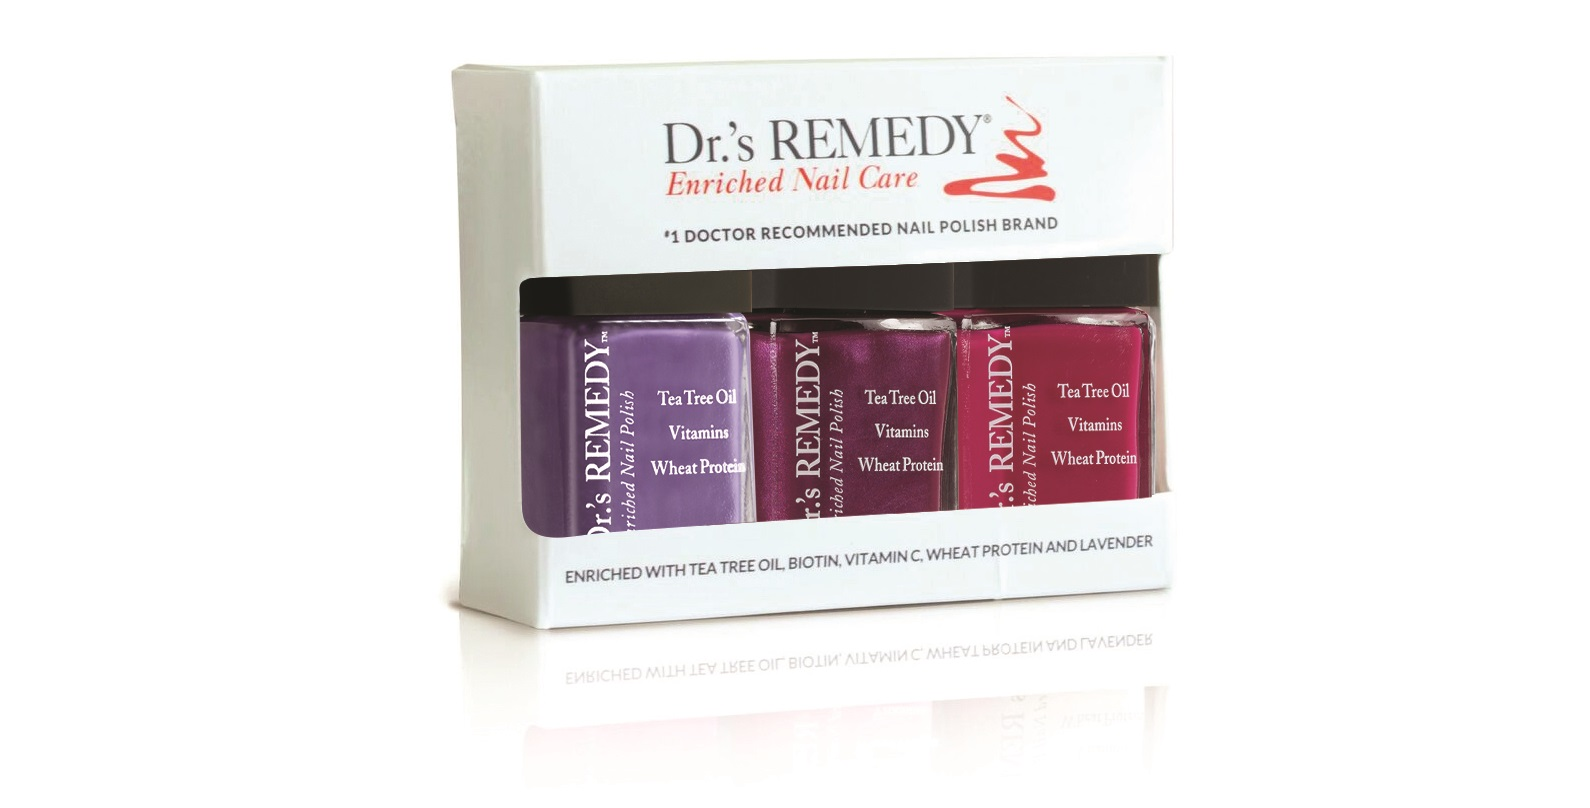 Dr.'s REMEDY Berry Fest Gift Set